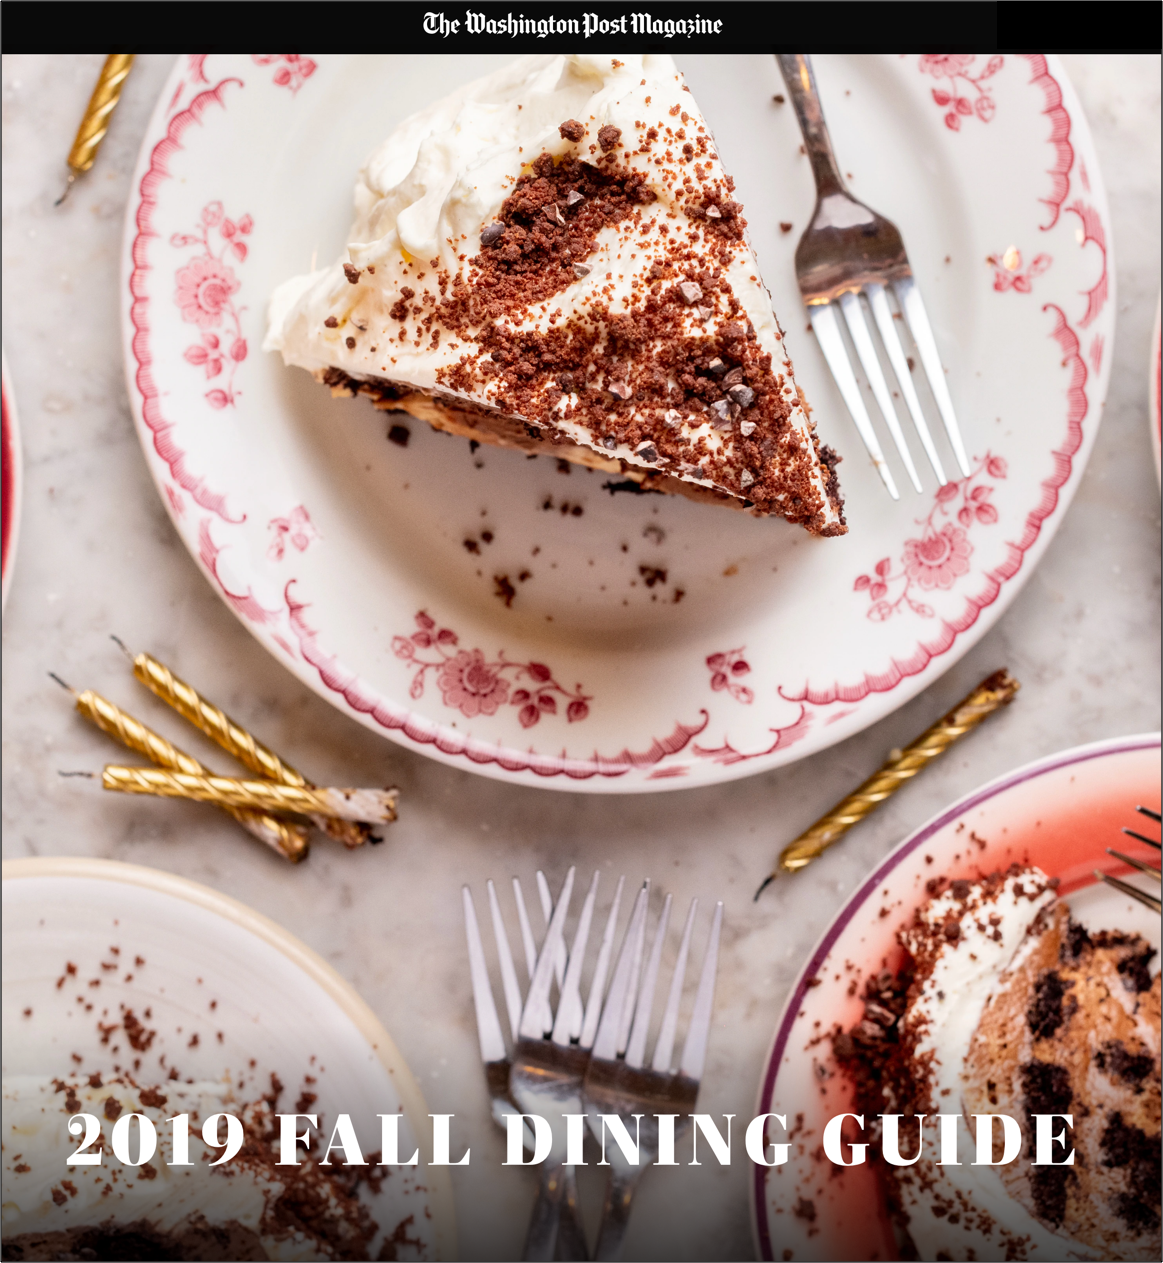 Seven Reasons named DC's Best Restaurant in Washington Post's Fall Dining Guide -